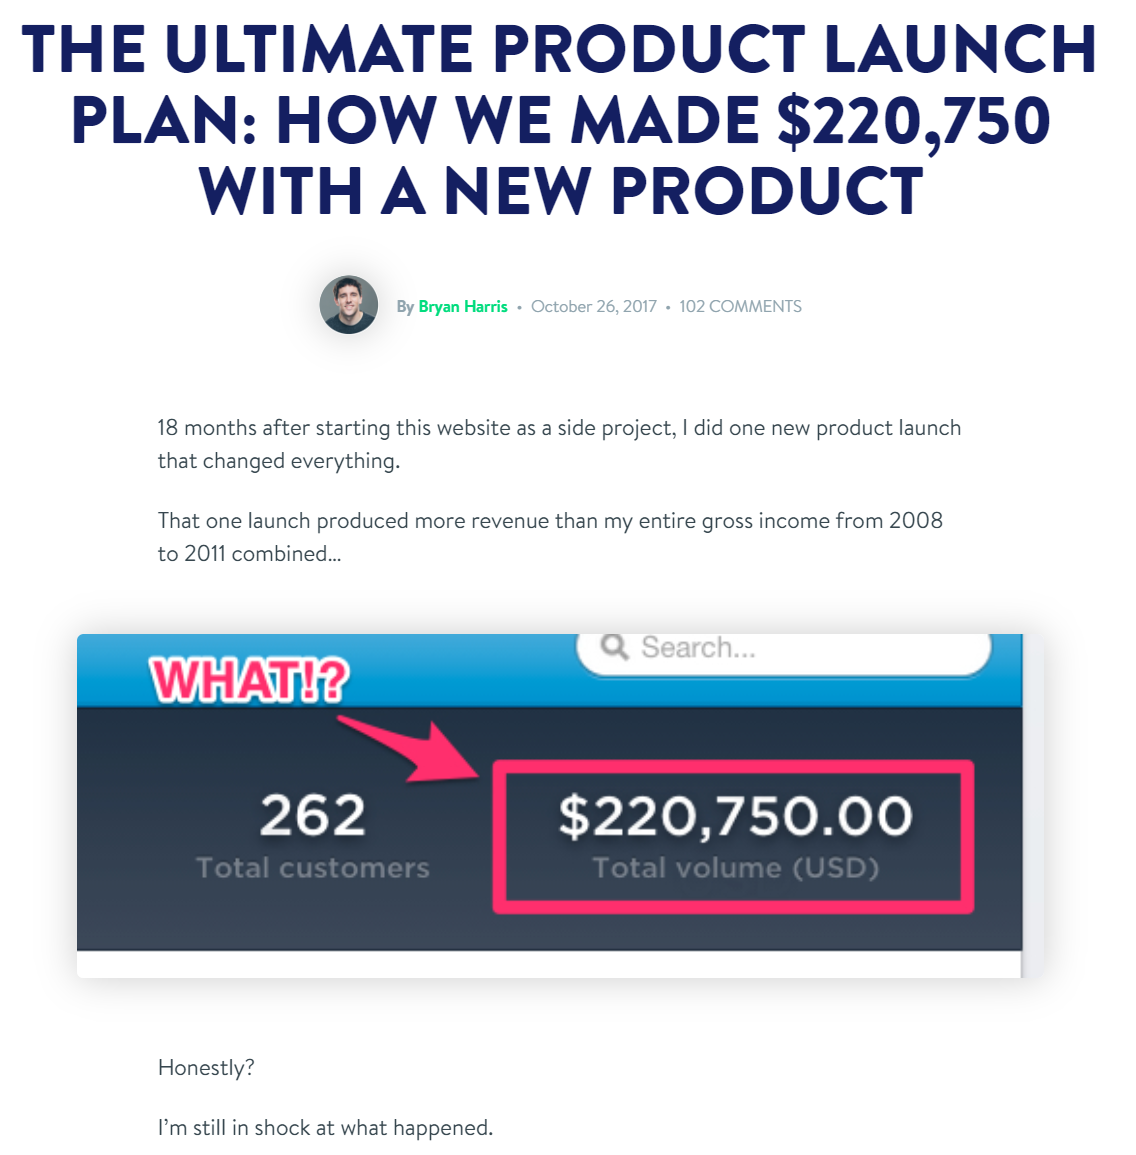 Screenshot of blog post (THE ULTIMATE PRODUCT LAUNCH PLAN: HOW WE MADE $220,750 WITH A NEW PRODUCT) from Growth Tools